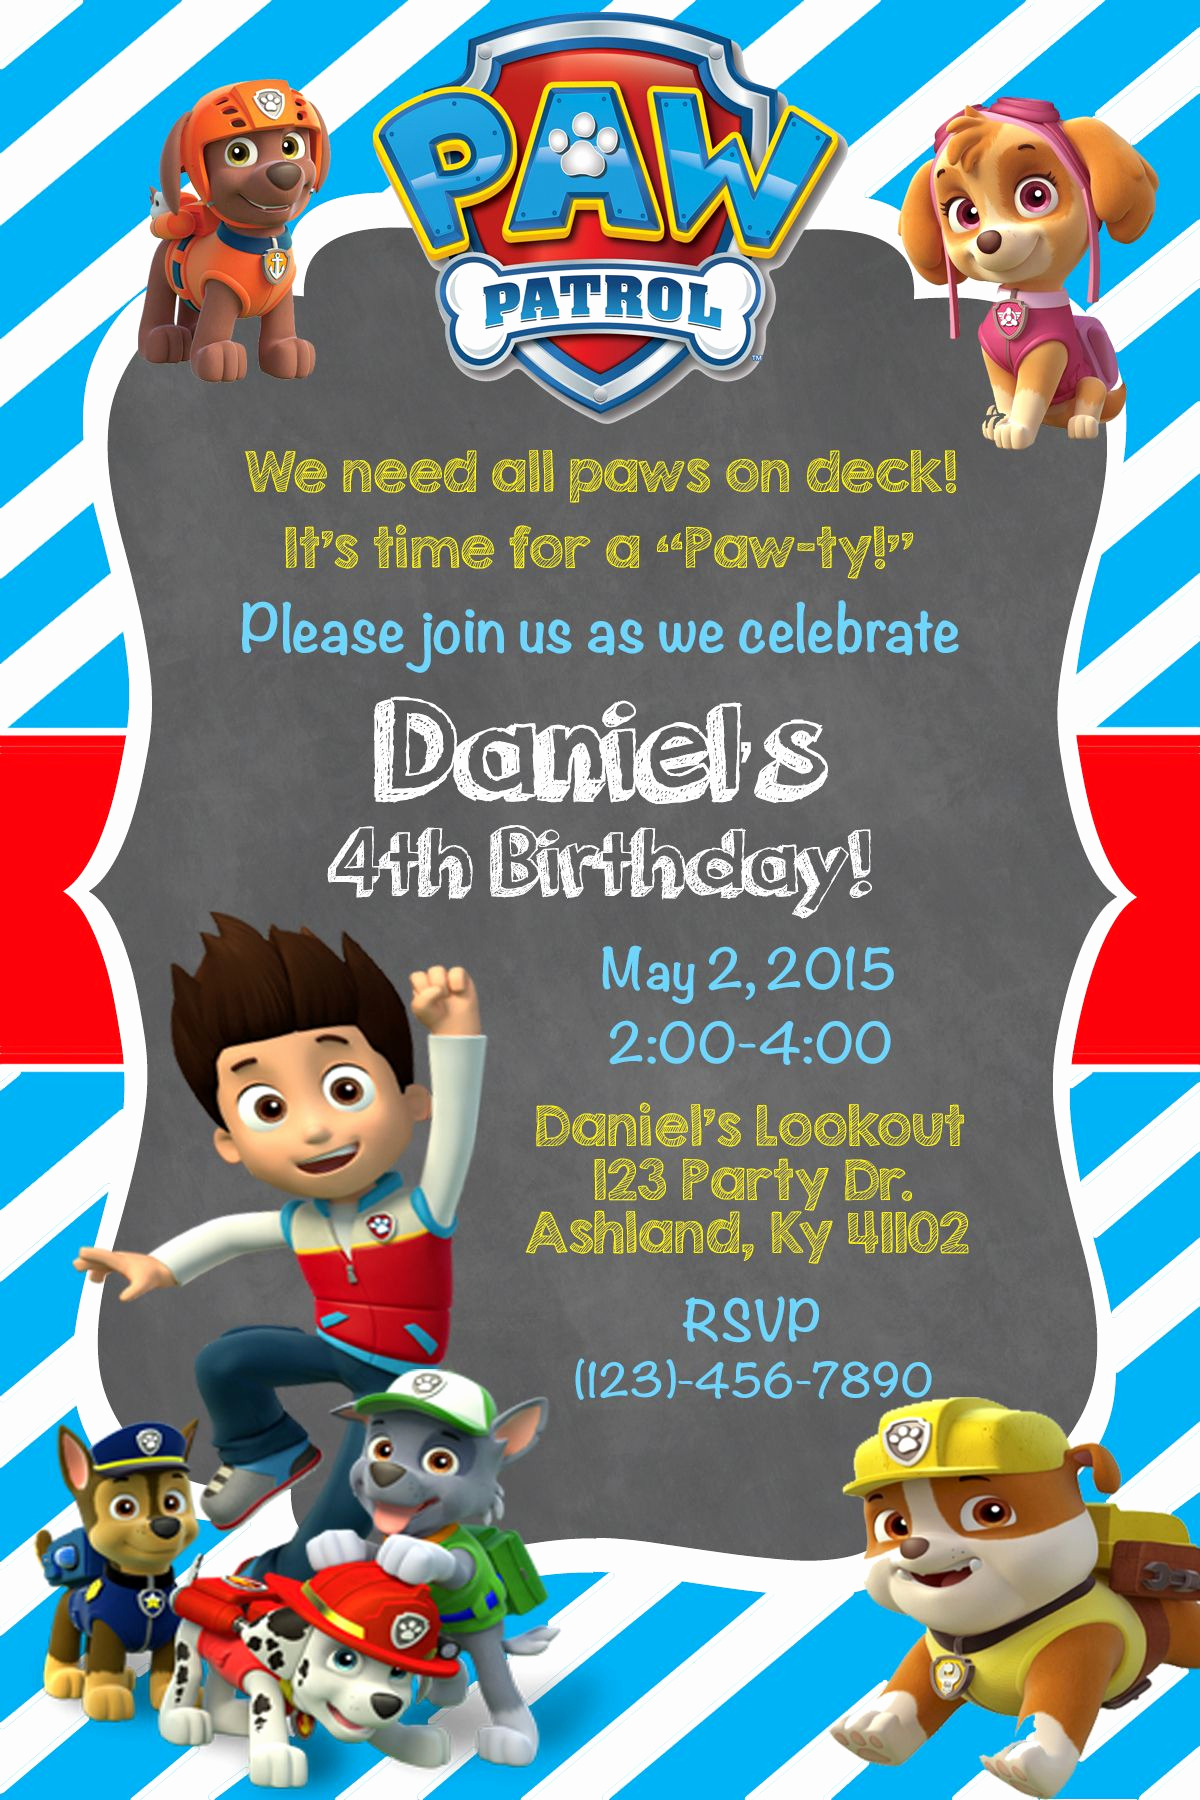 Paw Patrol Invitation Ideas New Paw Patrol Invite Shown In Light Blue $10 00